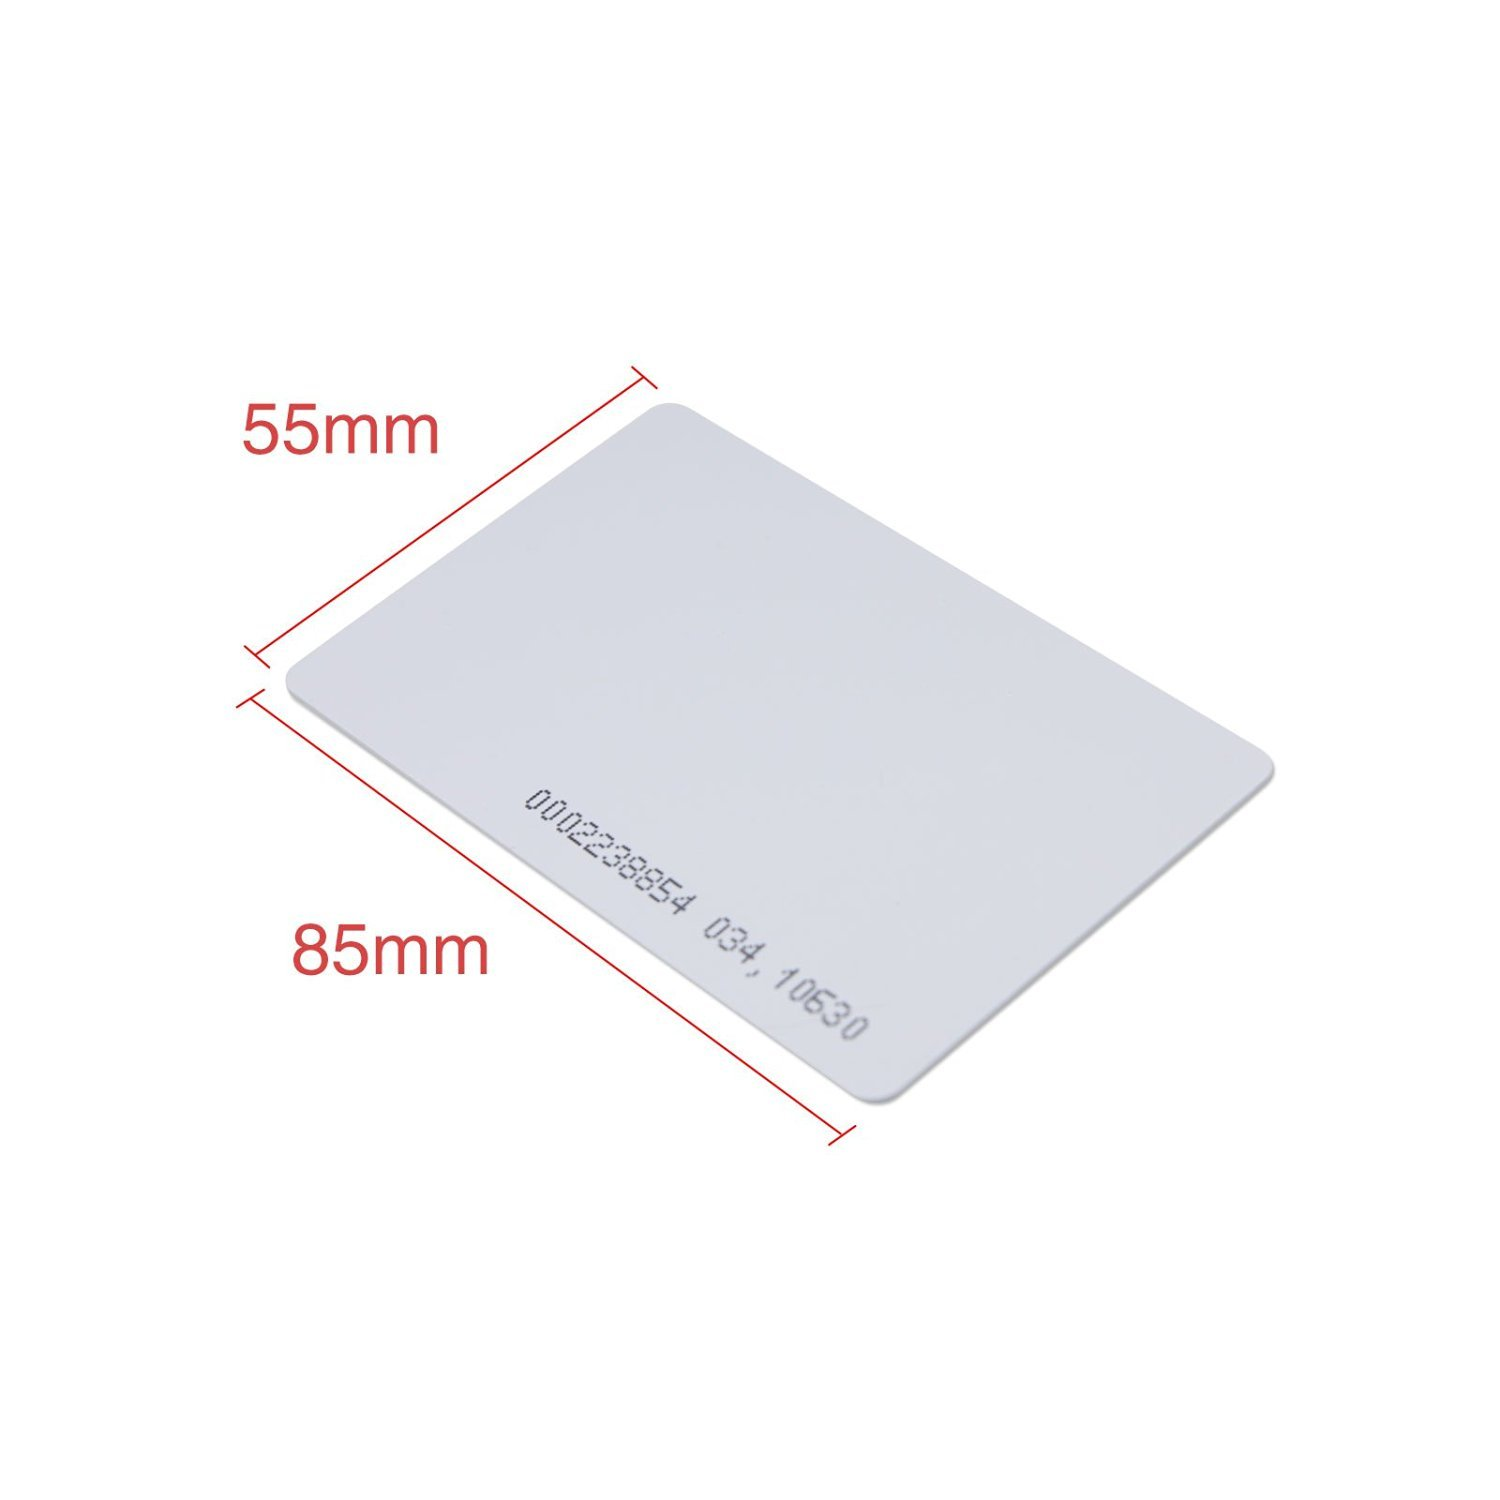 SainSmart Generic White Plastic Contactless 125kHz TK4100 EM4100 RFID Proximity ID Smart Entry Access Card (Pack of 100) by SainSmart (Image #5)